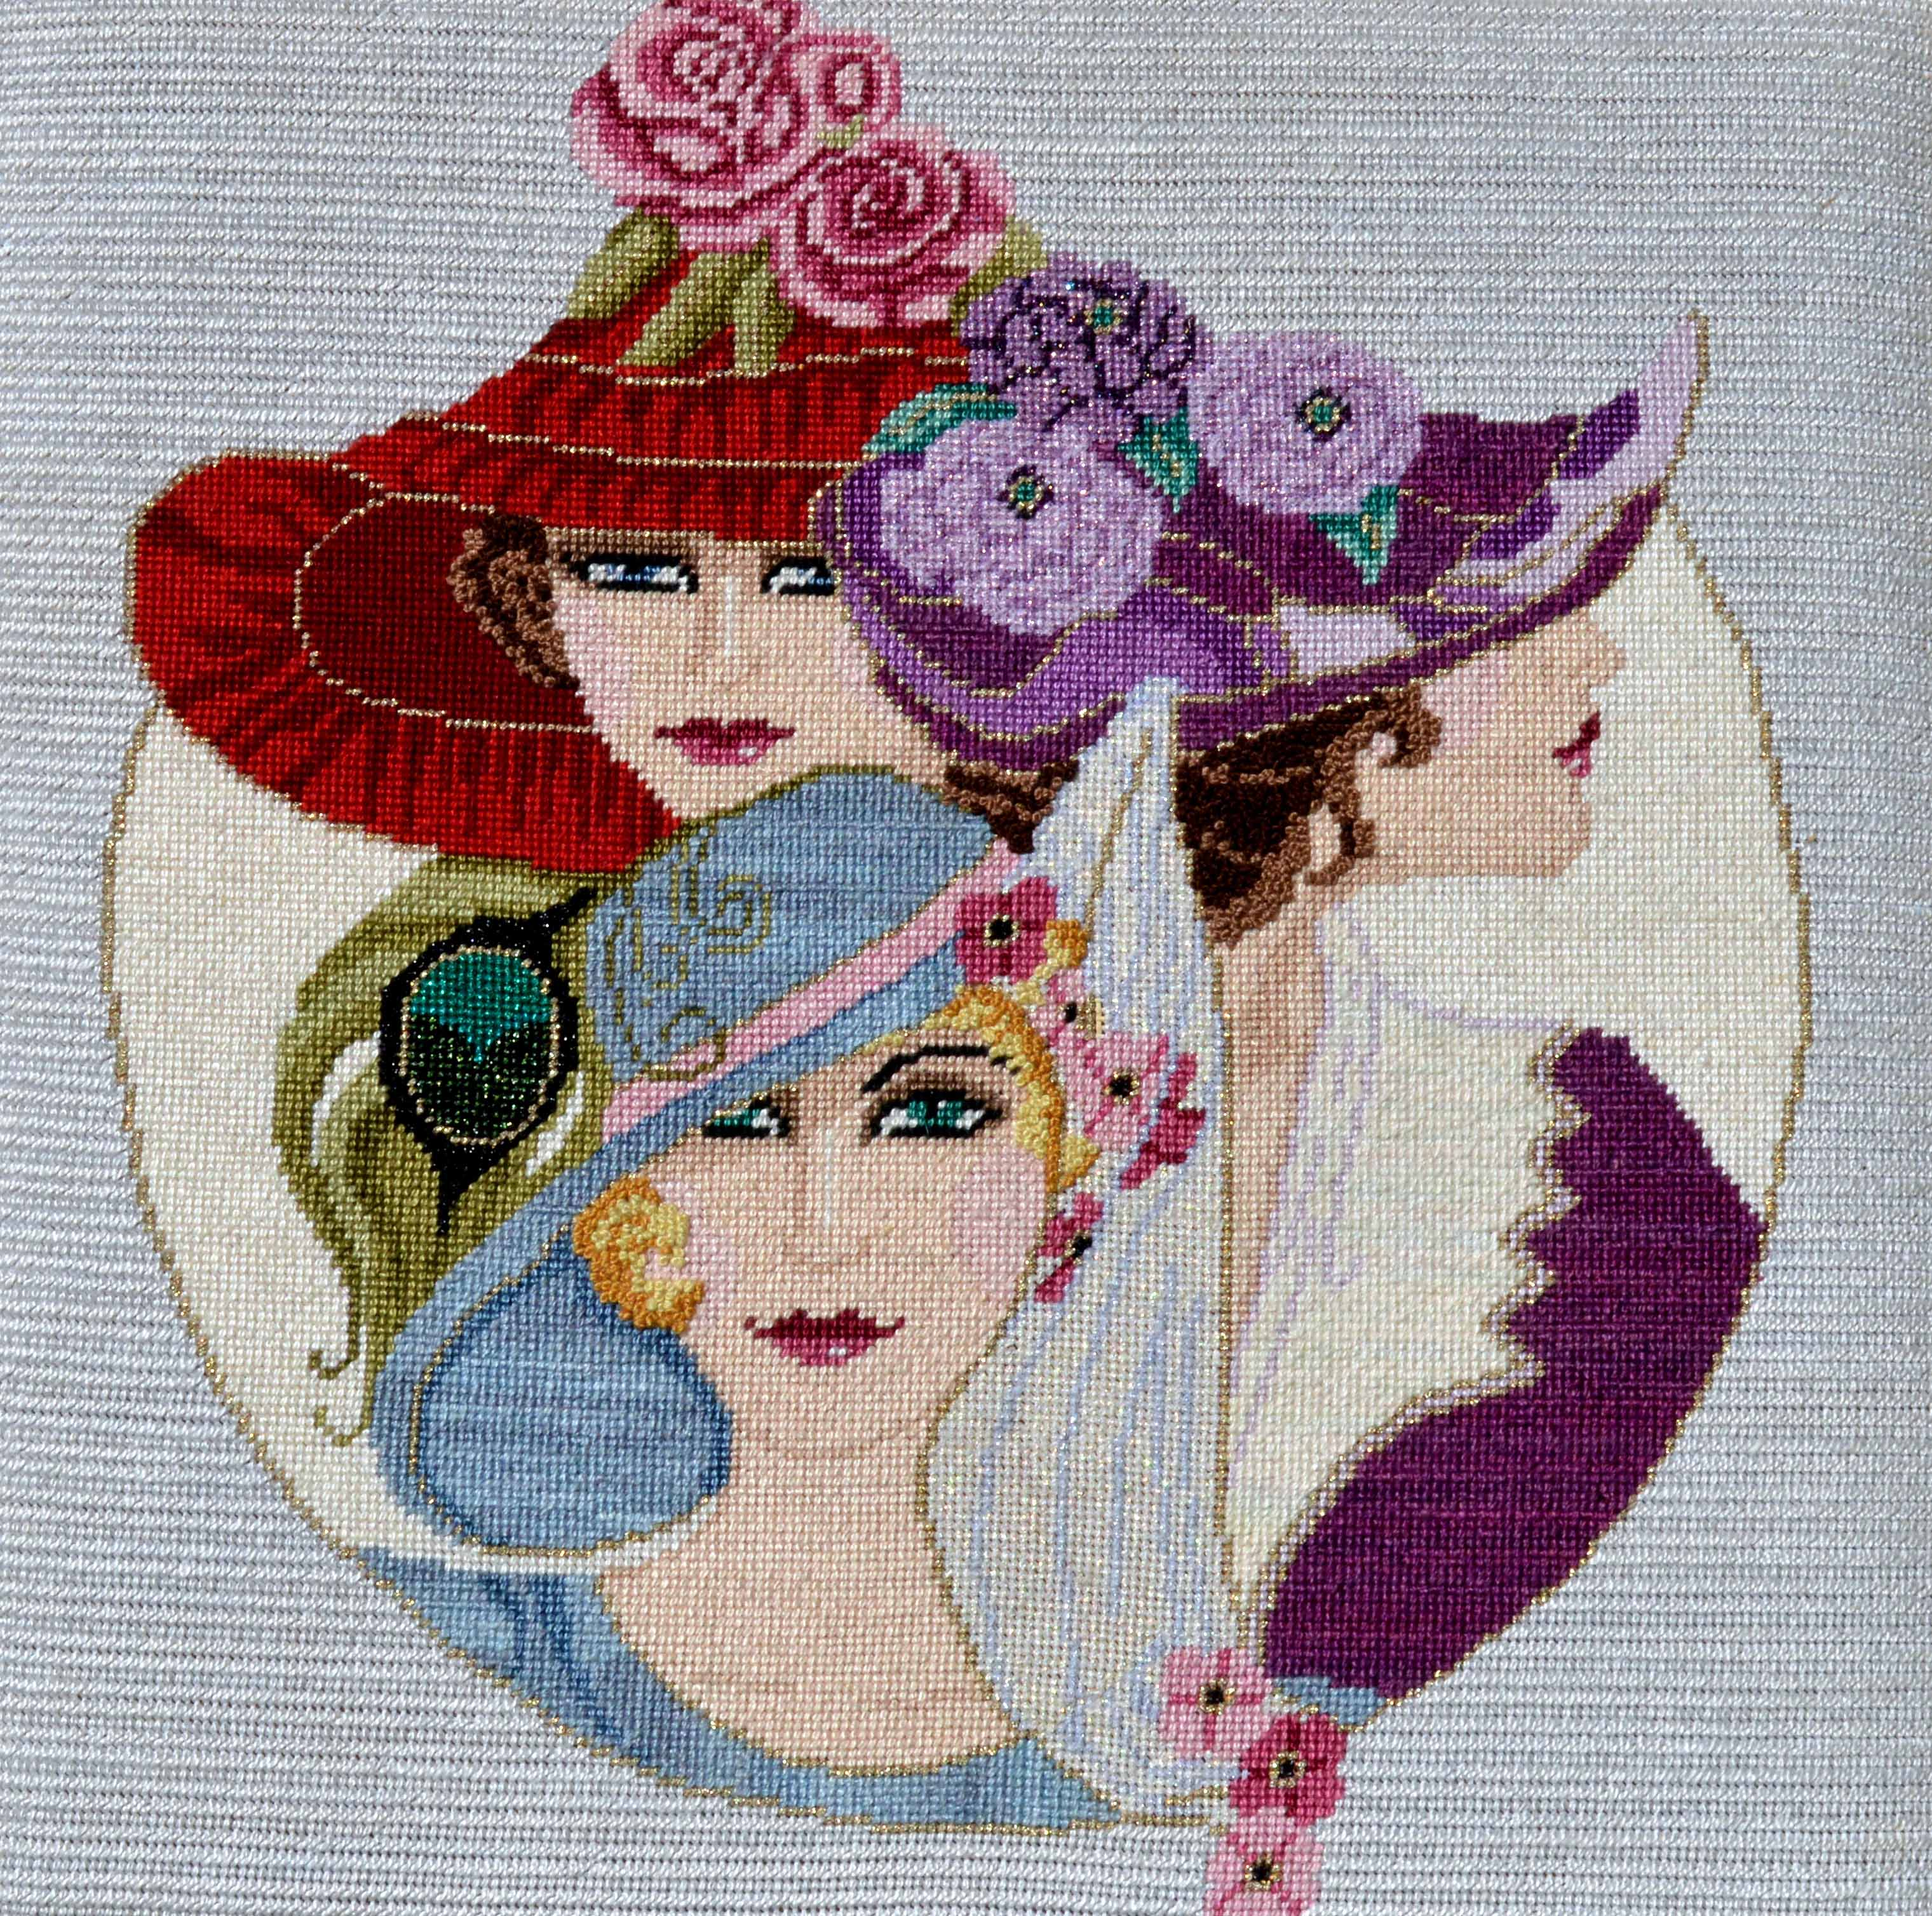 Needlepoint-3Ladies.jpg